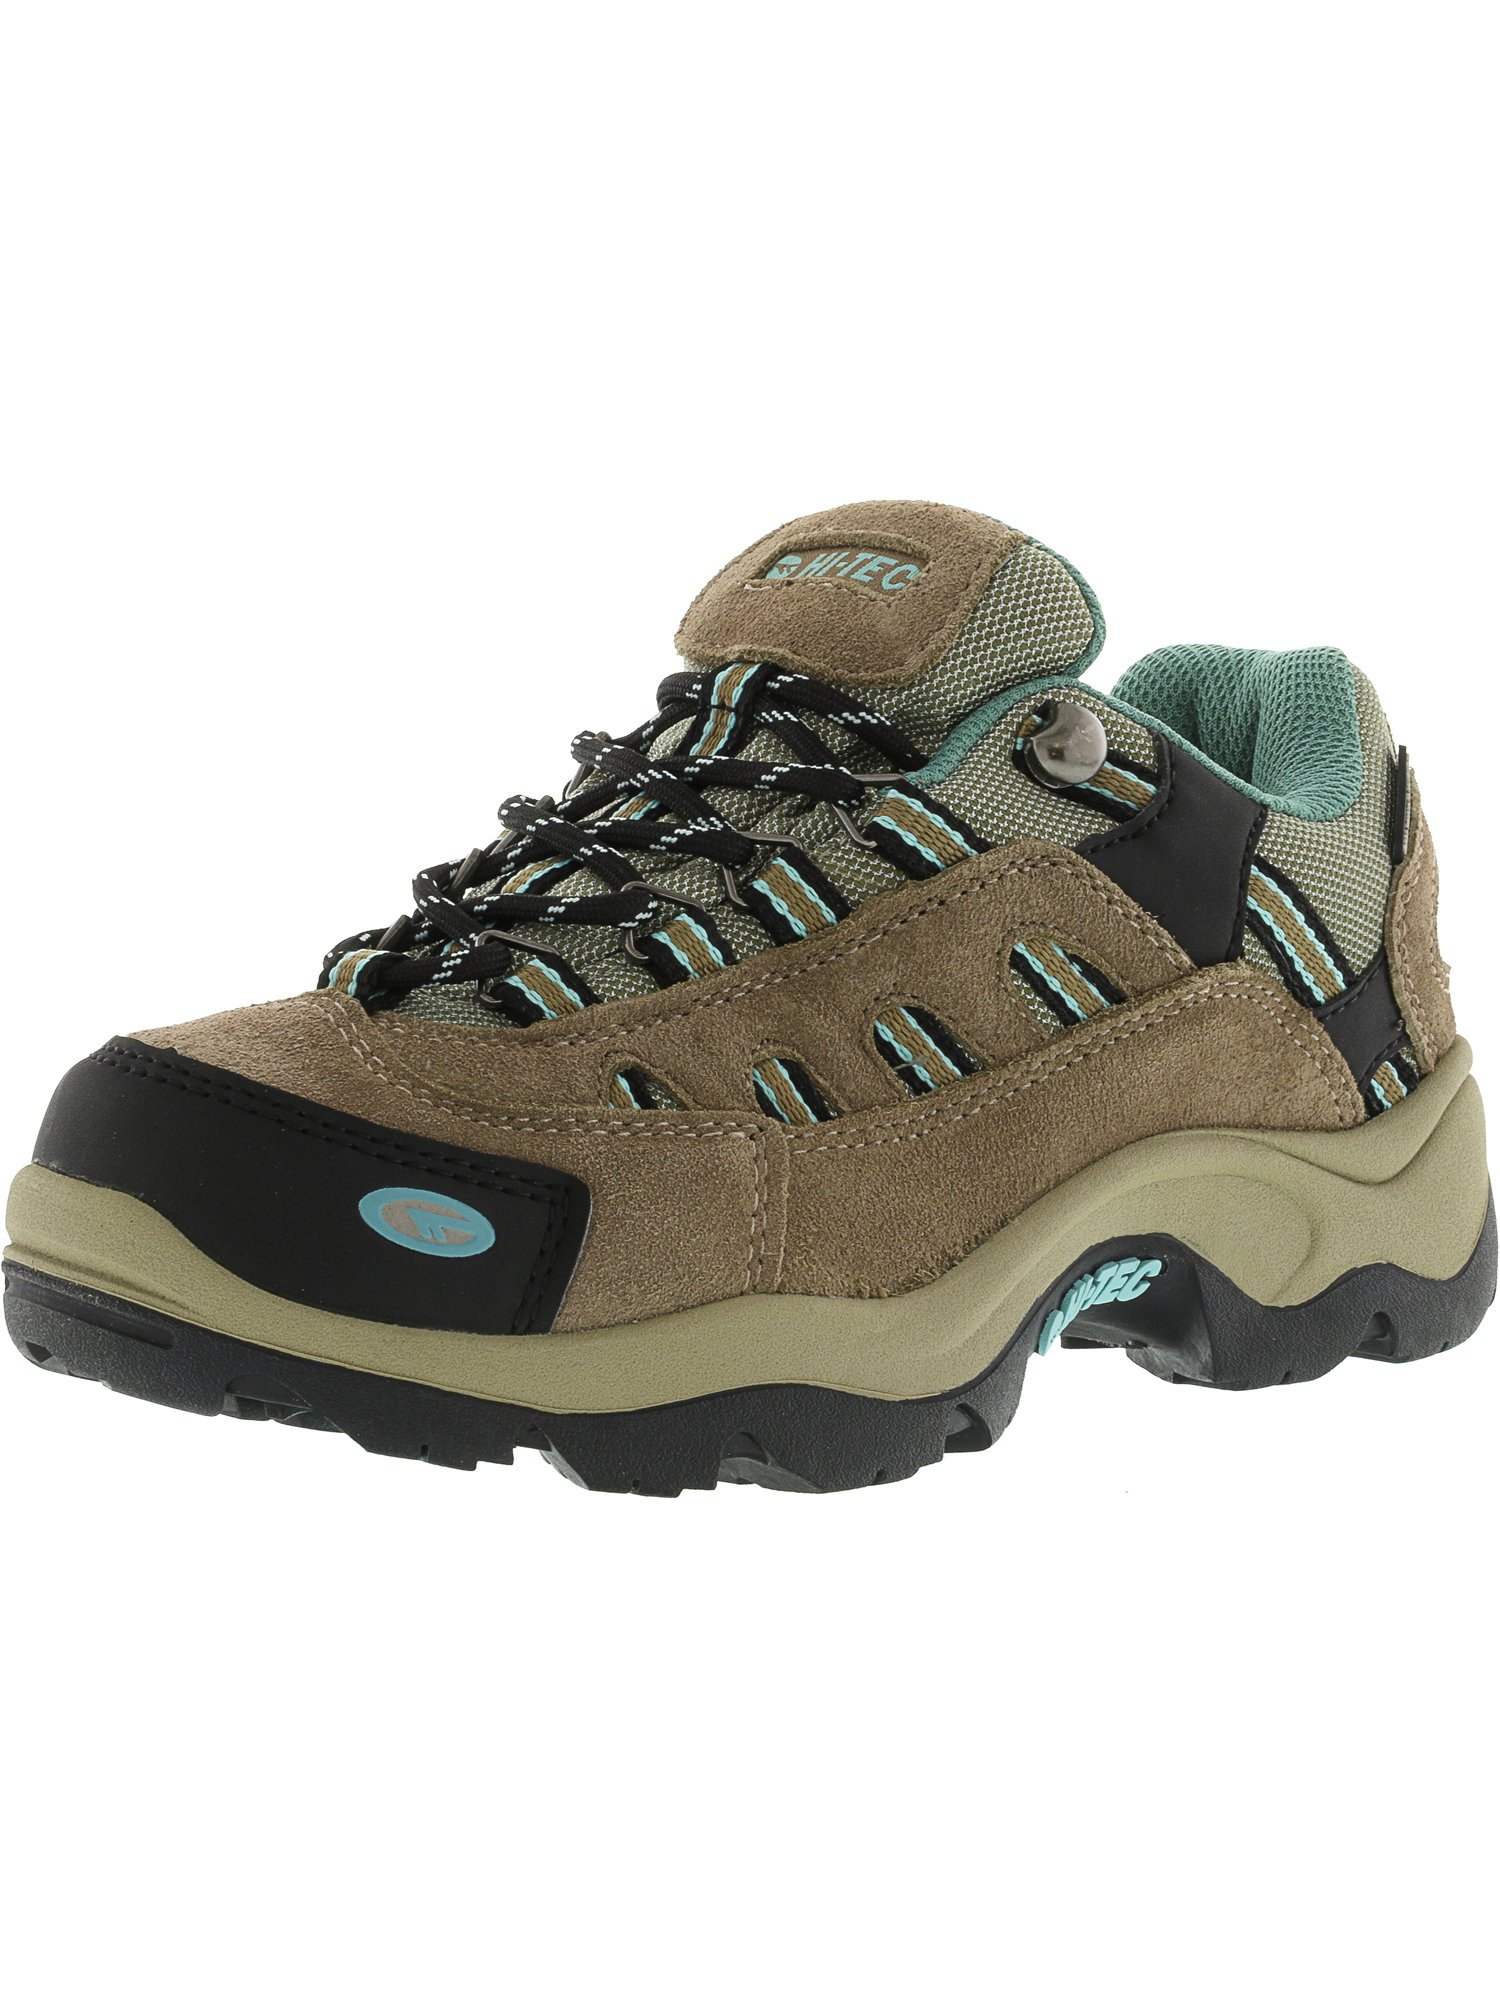 Hi-Tec Women's Bandera Low Waterproof Taupe   Dusty Mint Ankle-High Hiking Shoe 5.5M by Hi-Tec